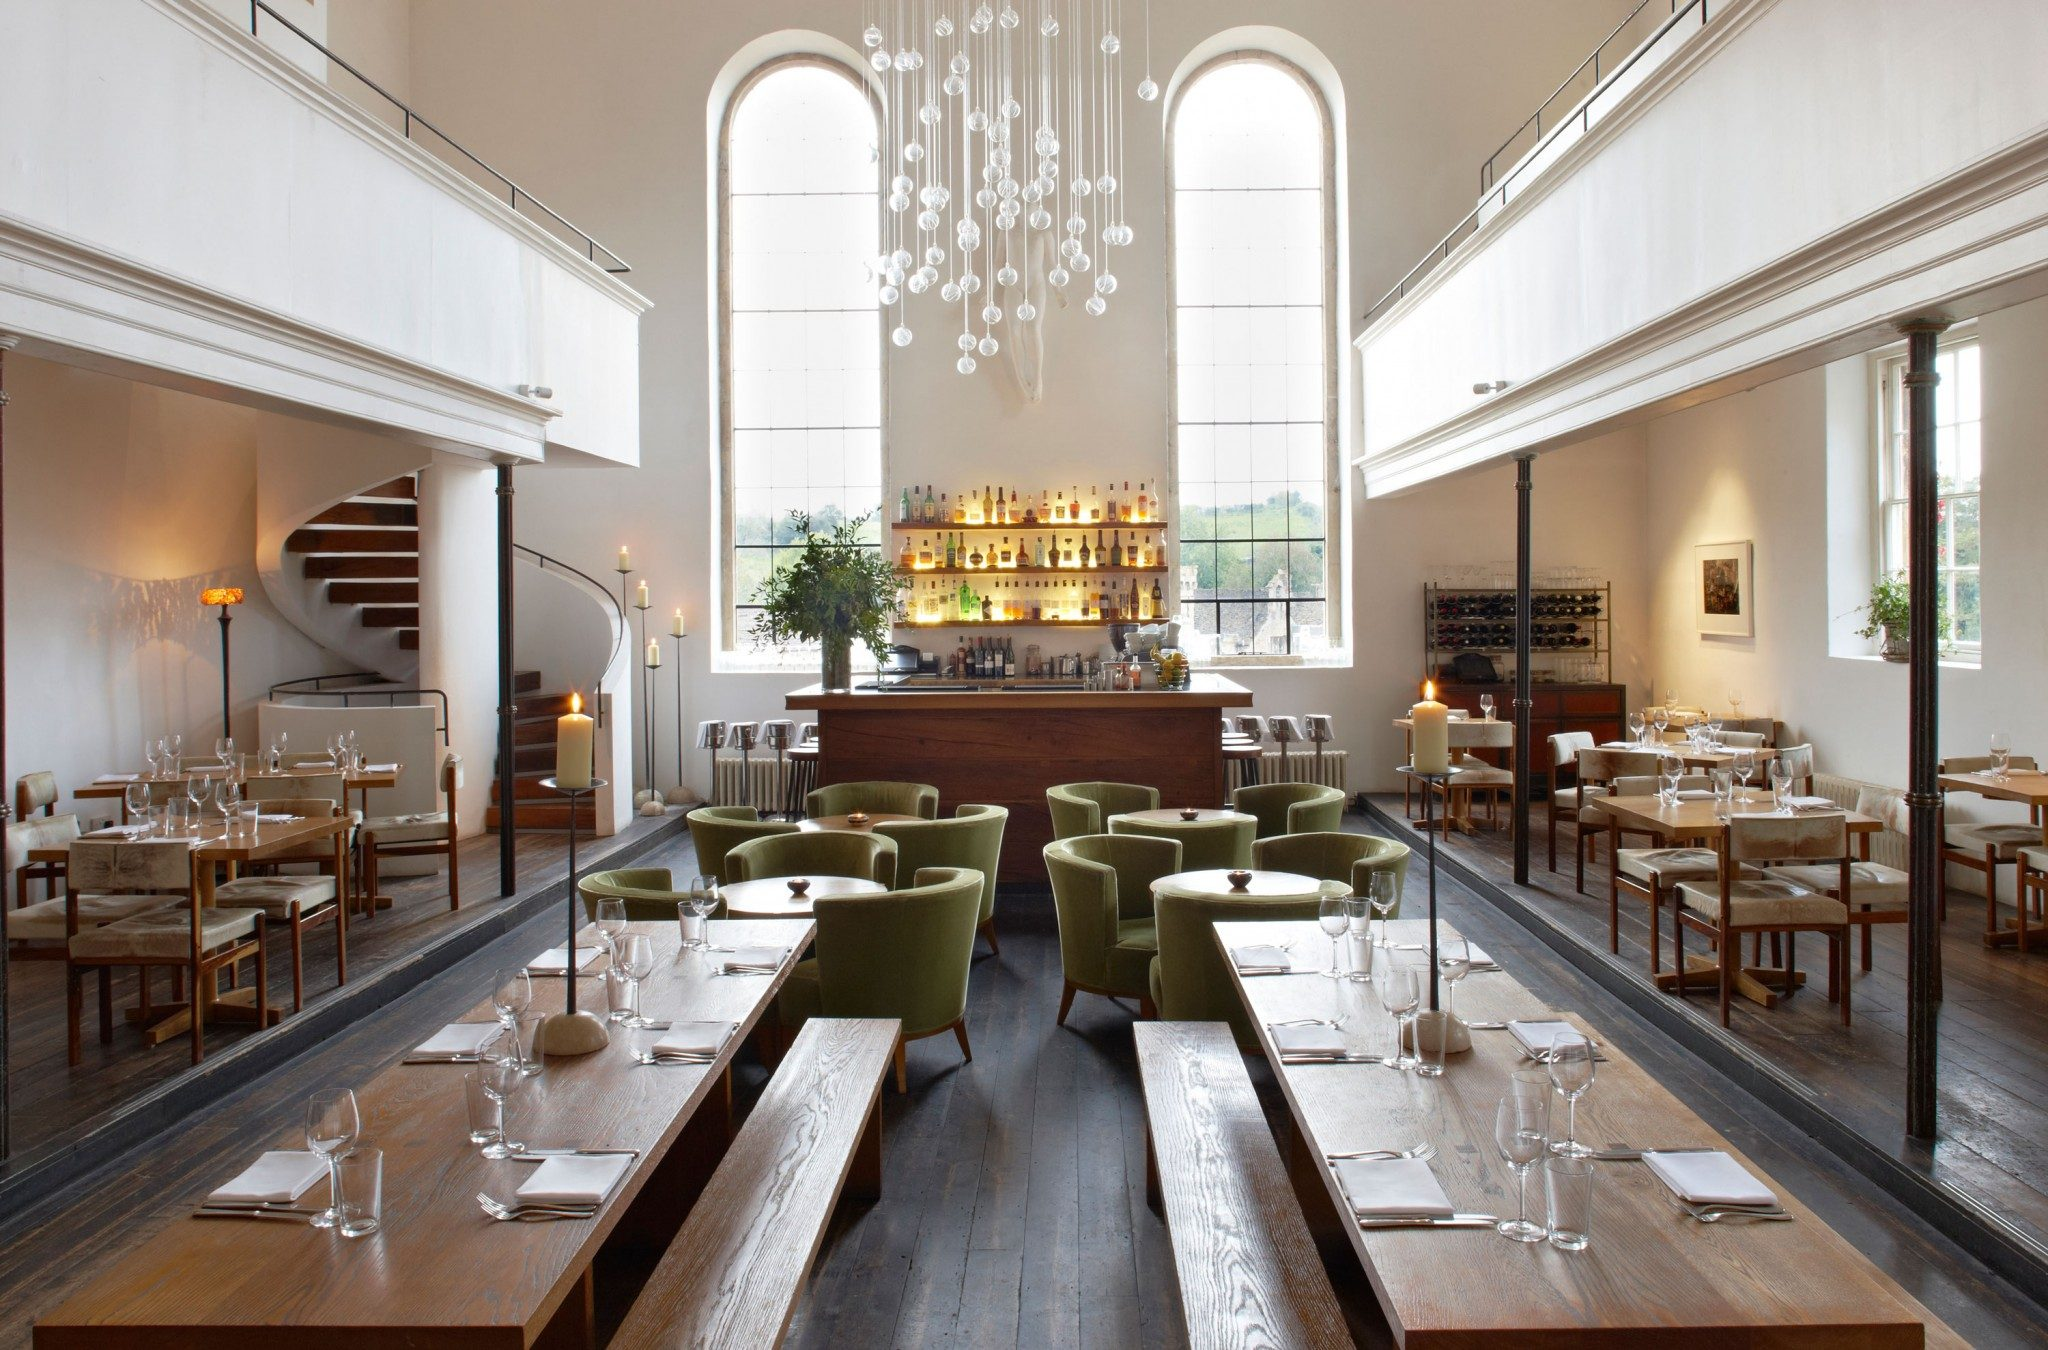 mackenzie wheeler are listed building church restaurant architects based in shoreditch london specializing in conservation and hospitality